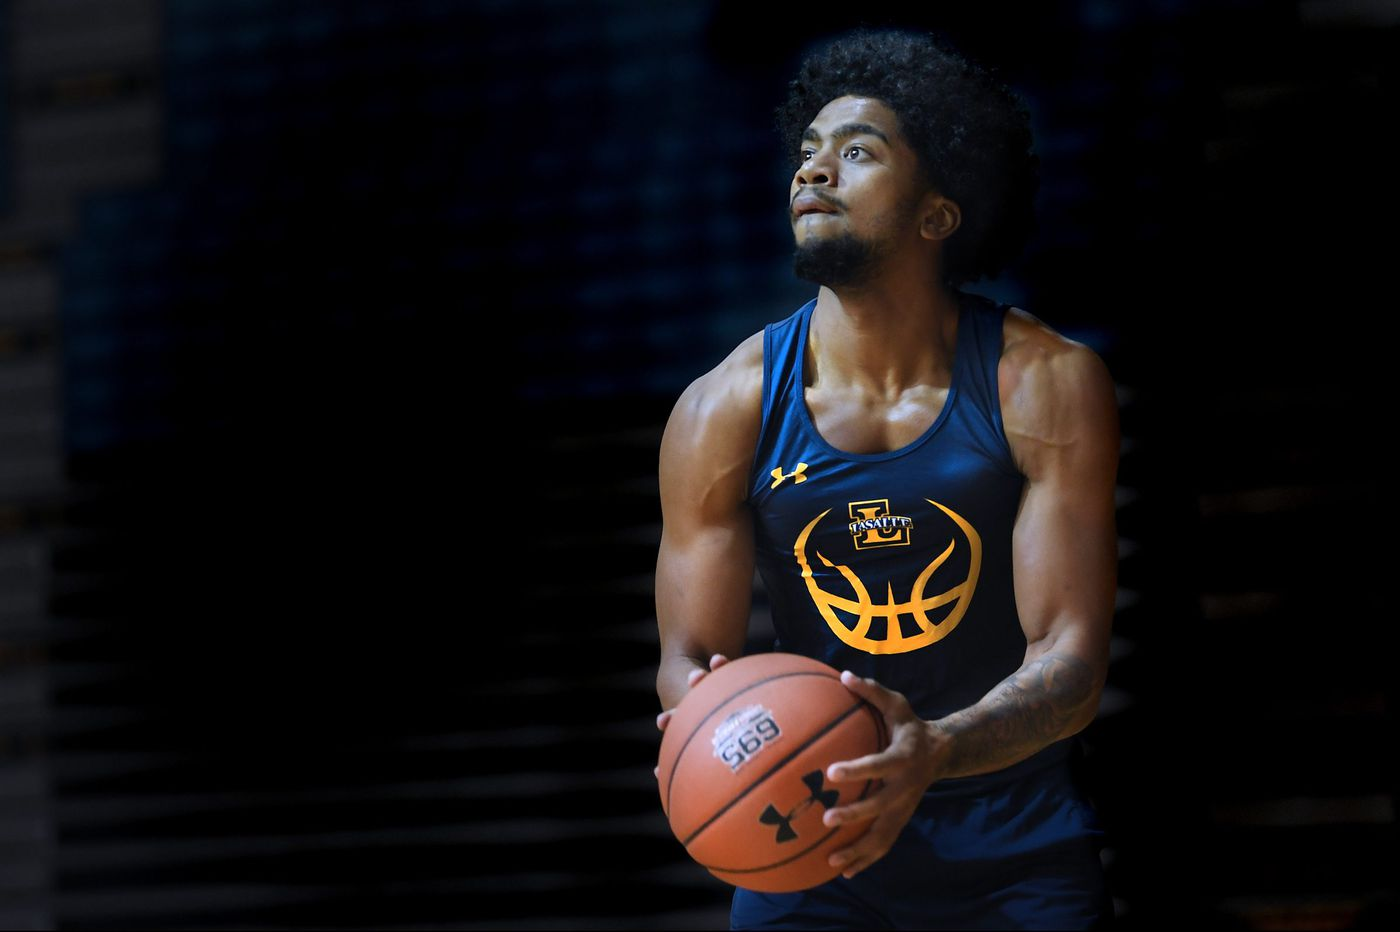 Pookie Powell, back for one more season, is looking to win at La Salle | Season preview